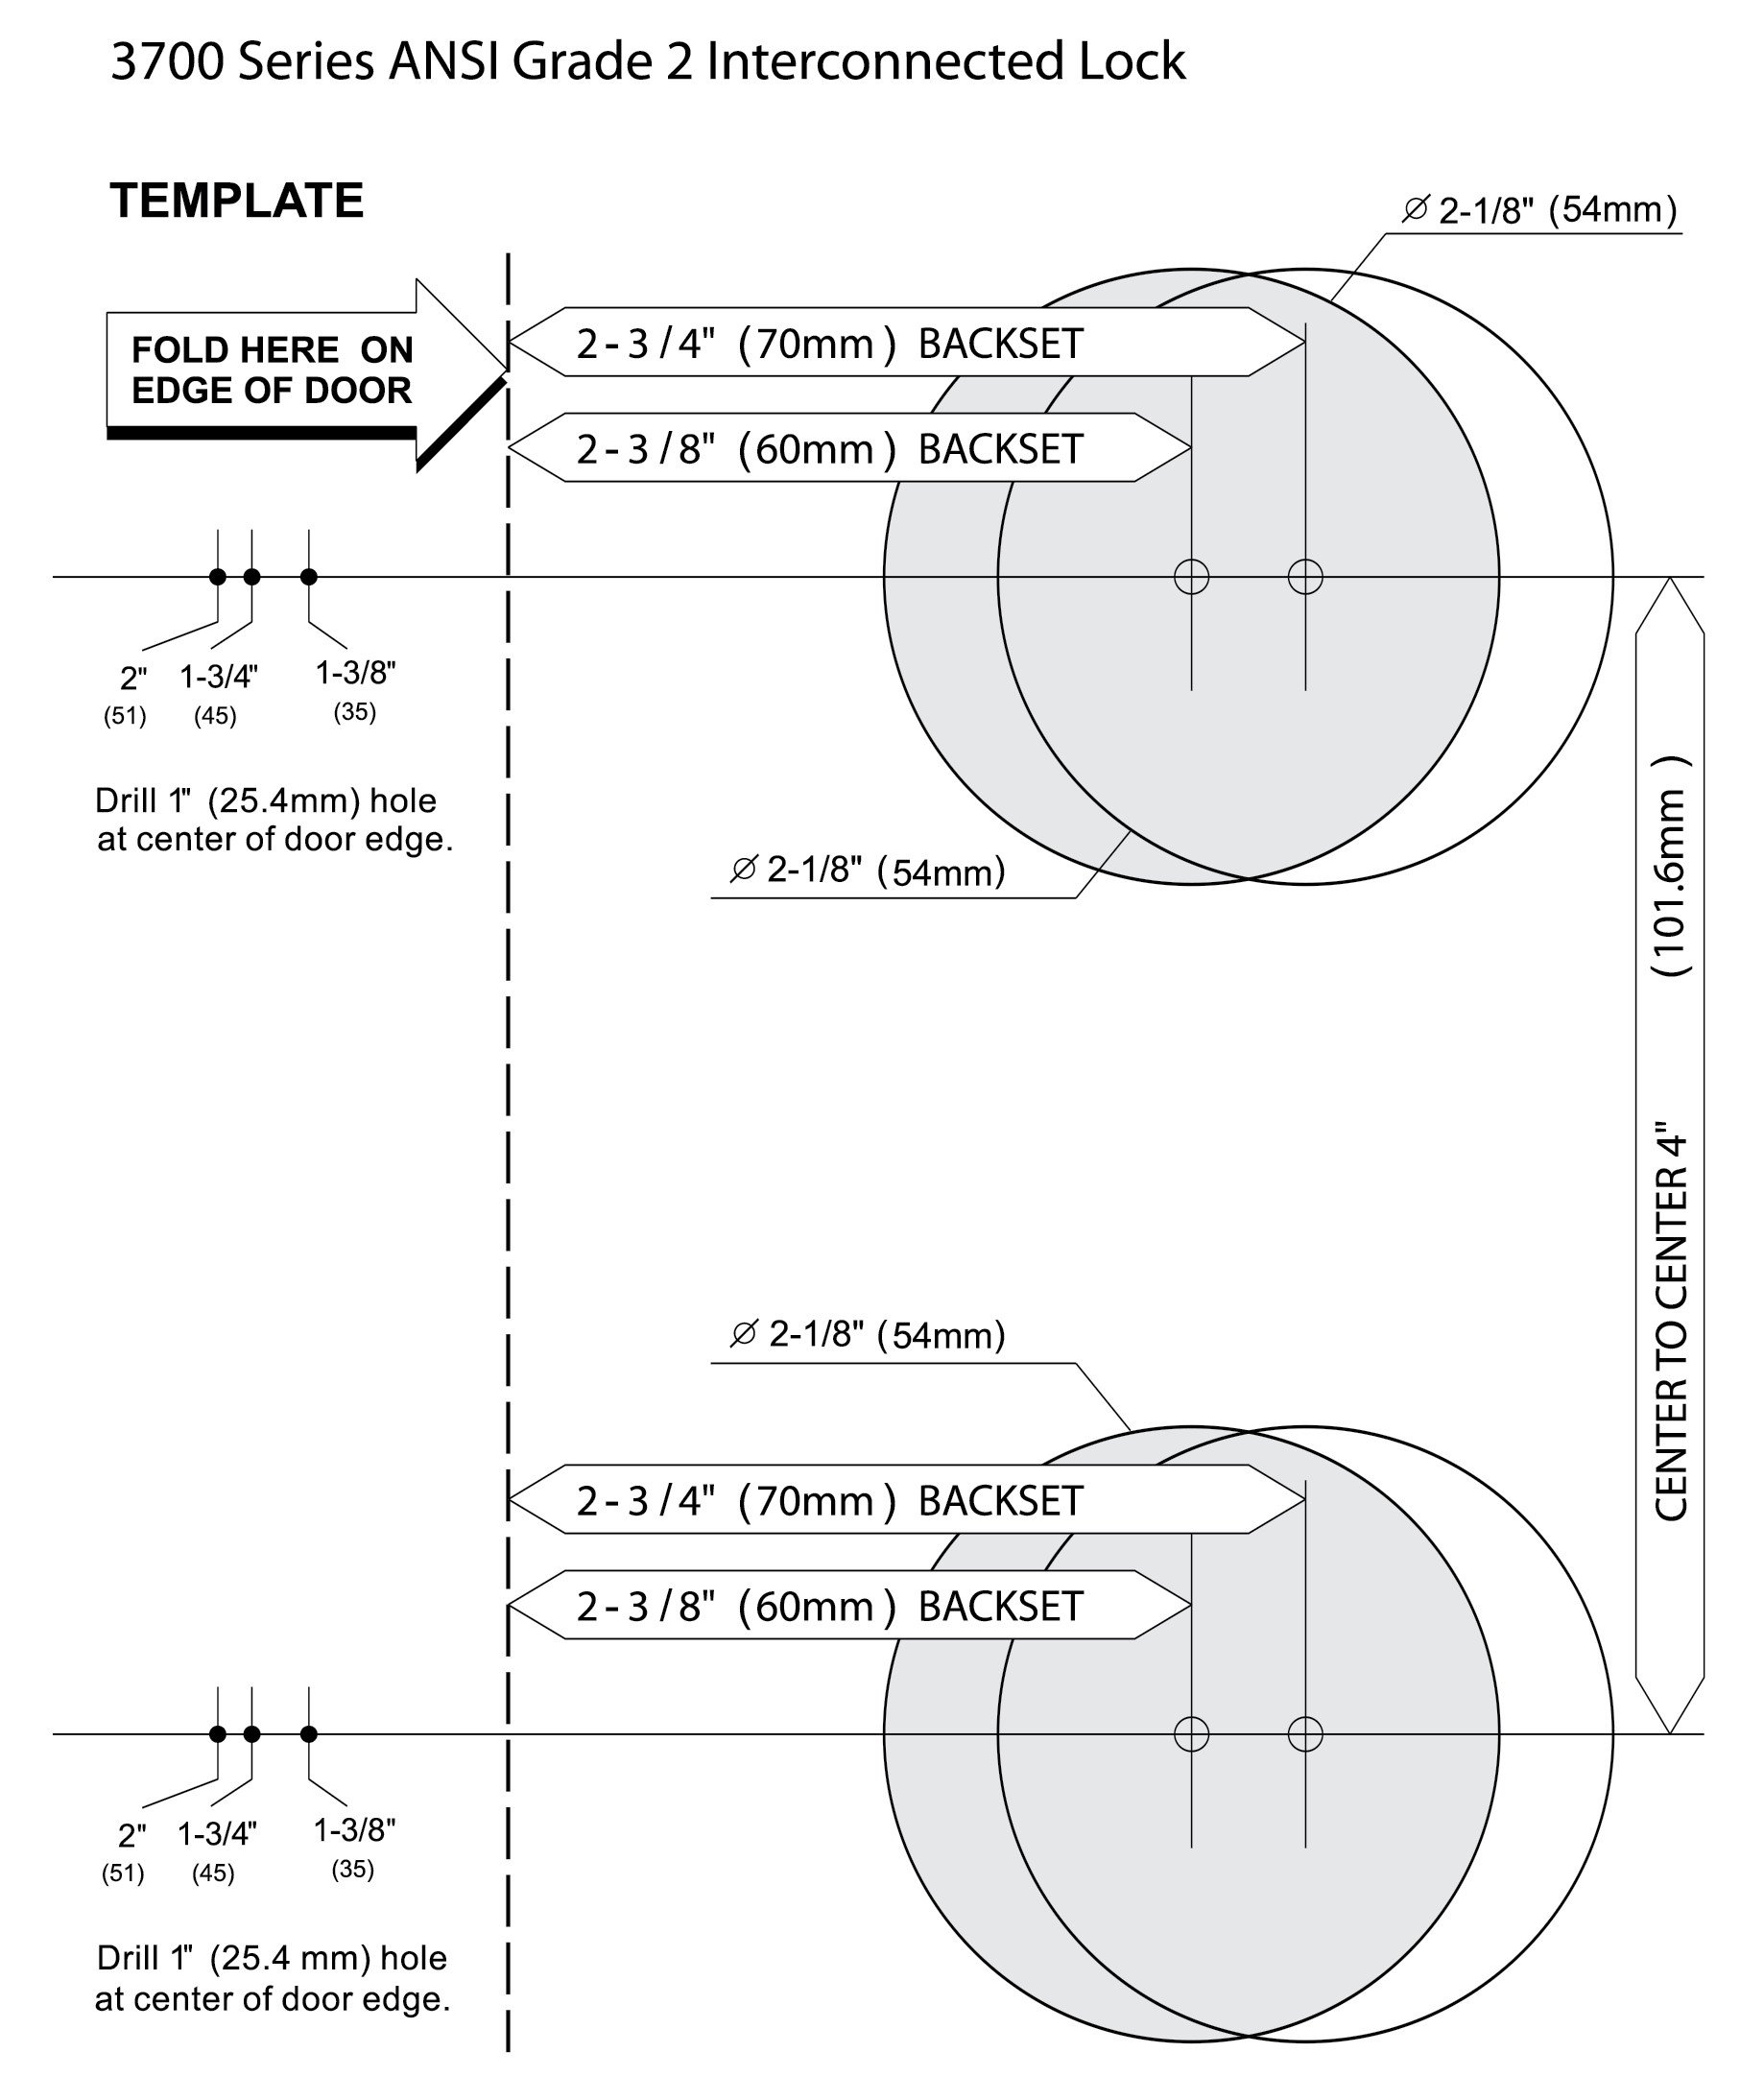 Deadbolt Installation Template Hager 3700 Series Grade 2 Interconnected Lockset